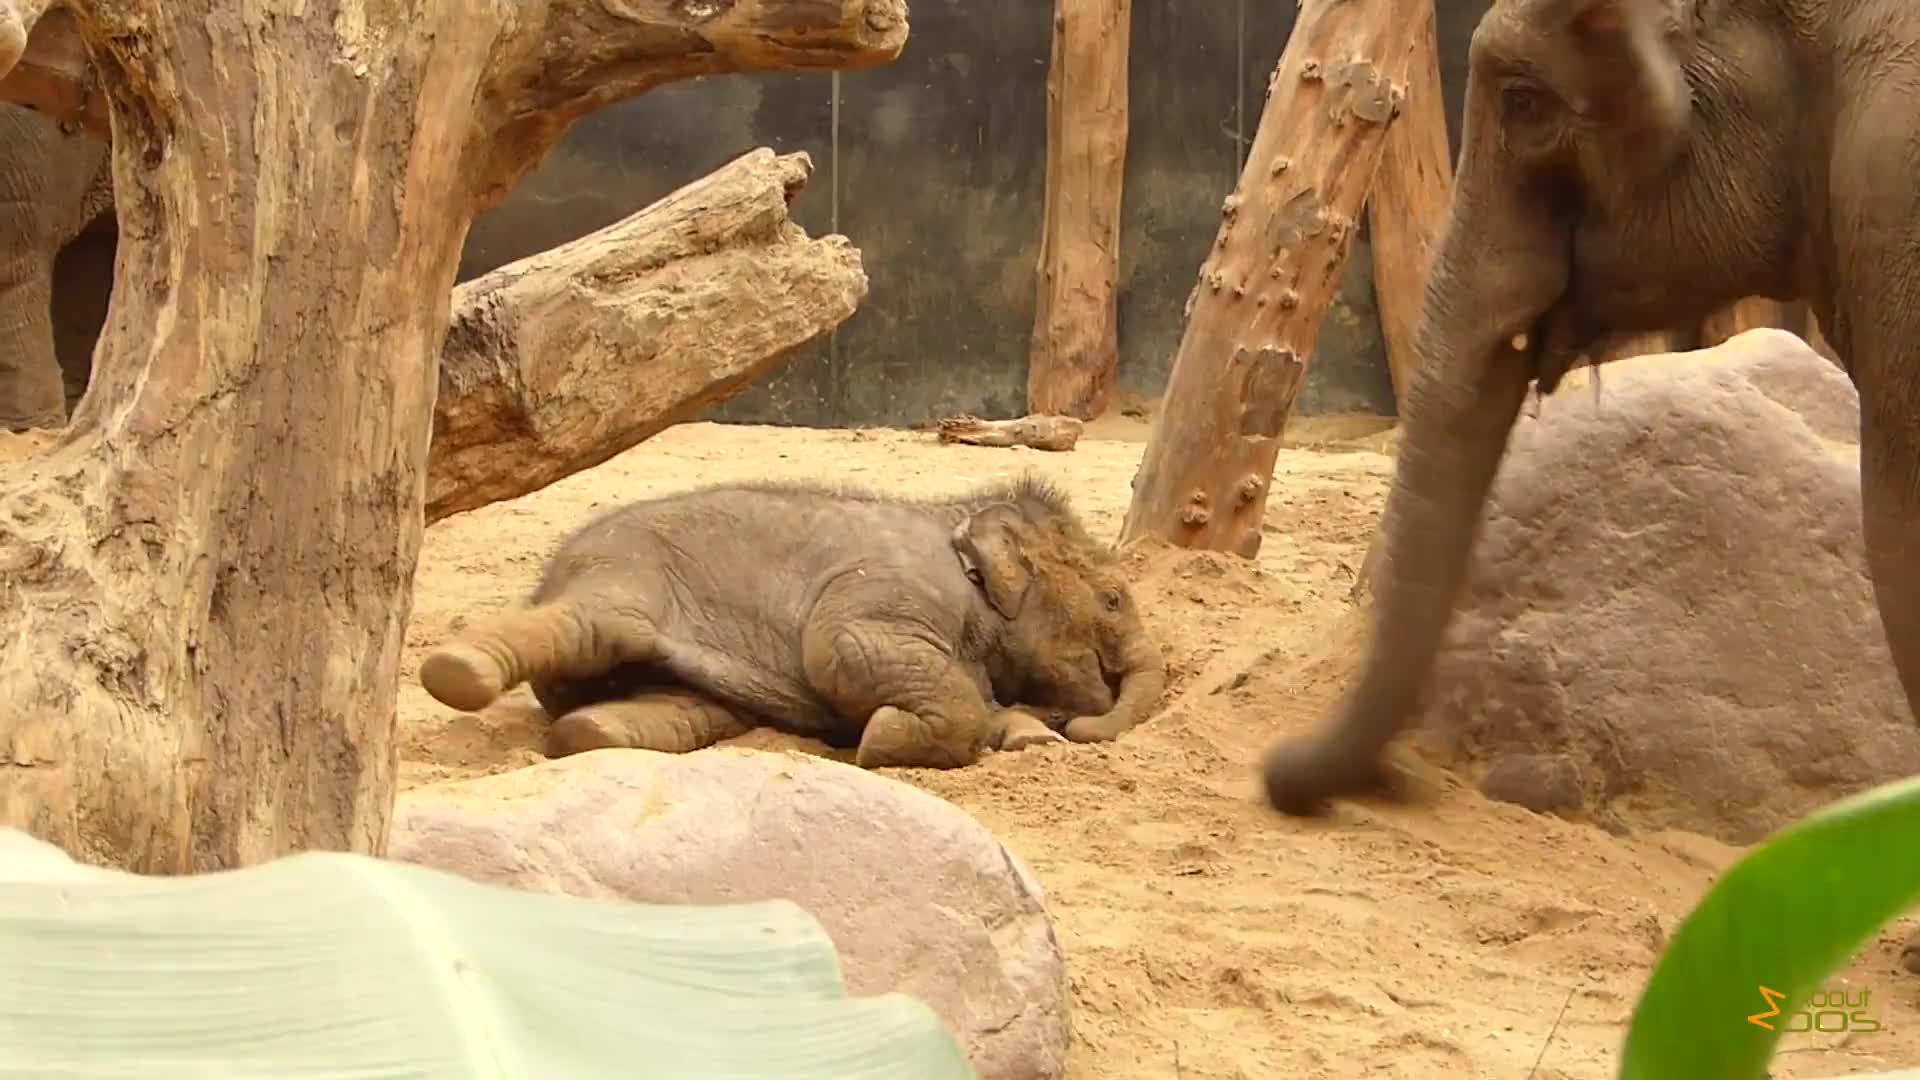 amersfoort, asian elephants, calves, dierenpark, dierentuin, netherlands, parc zoologique, pmmesteamk3ys, tierpark, zoo, zoological park, mom and baby playing in the dirt GIFs